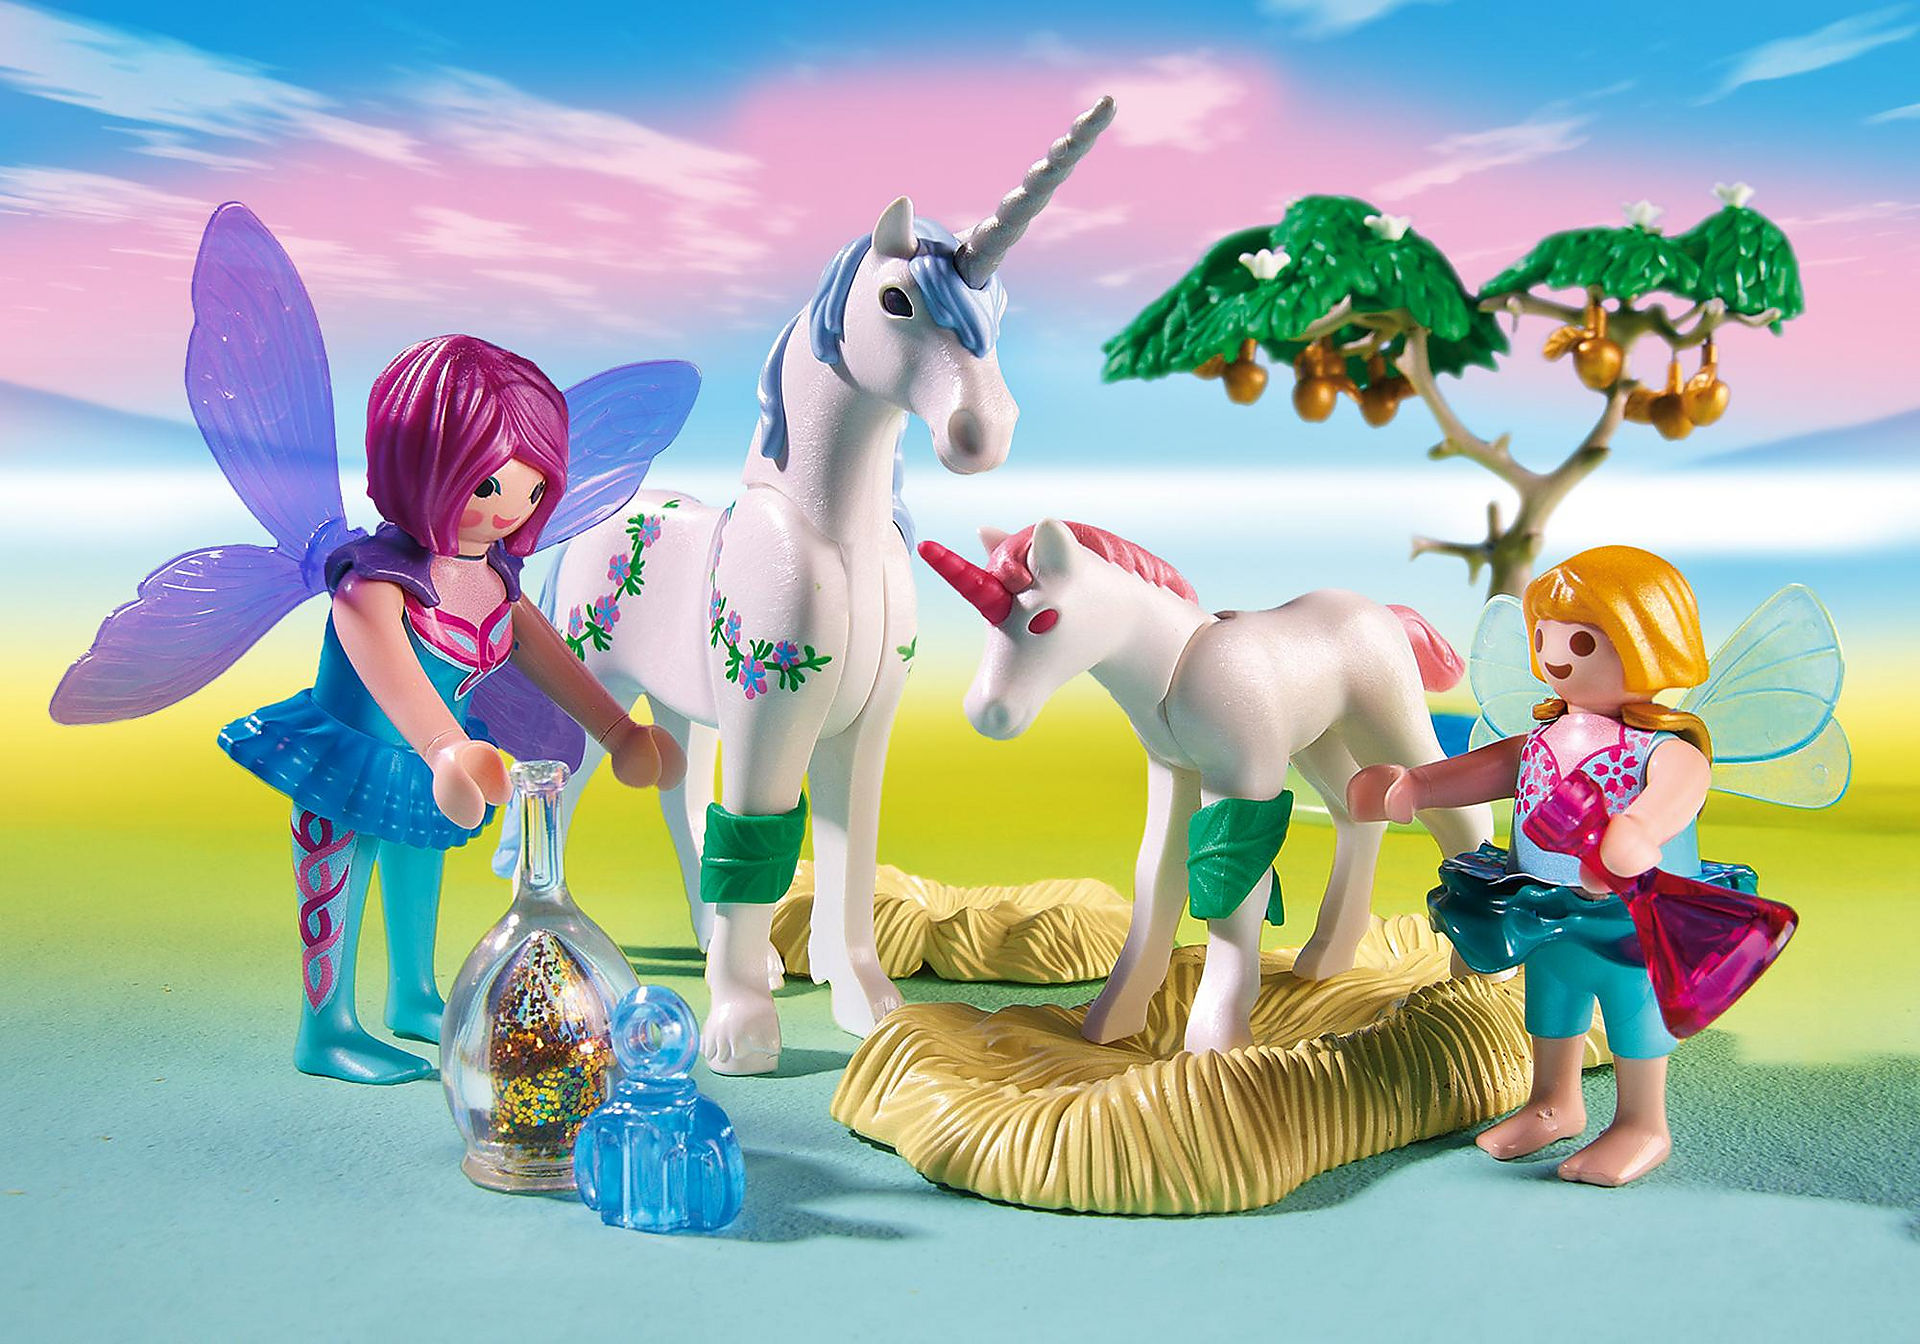 http://media.playmobil.com/i/playmobil/6055_product_extra3/Fairies with Toadstool House